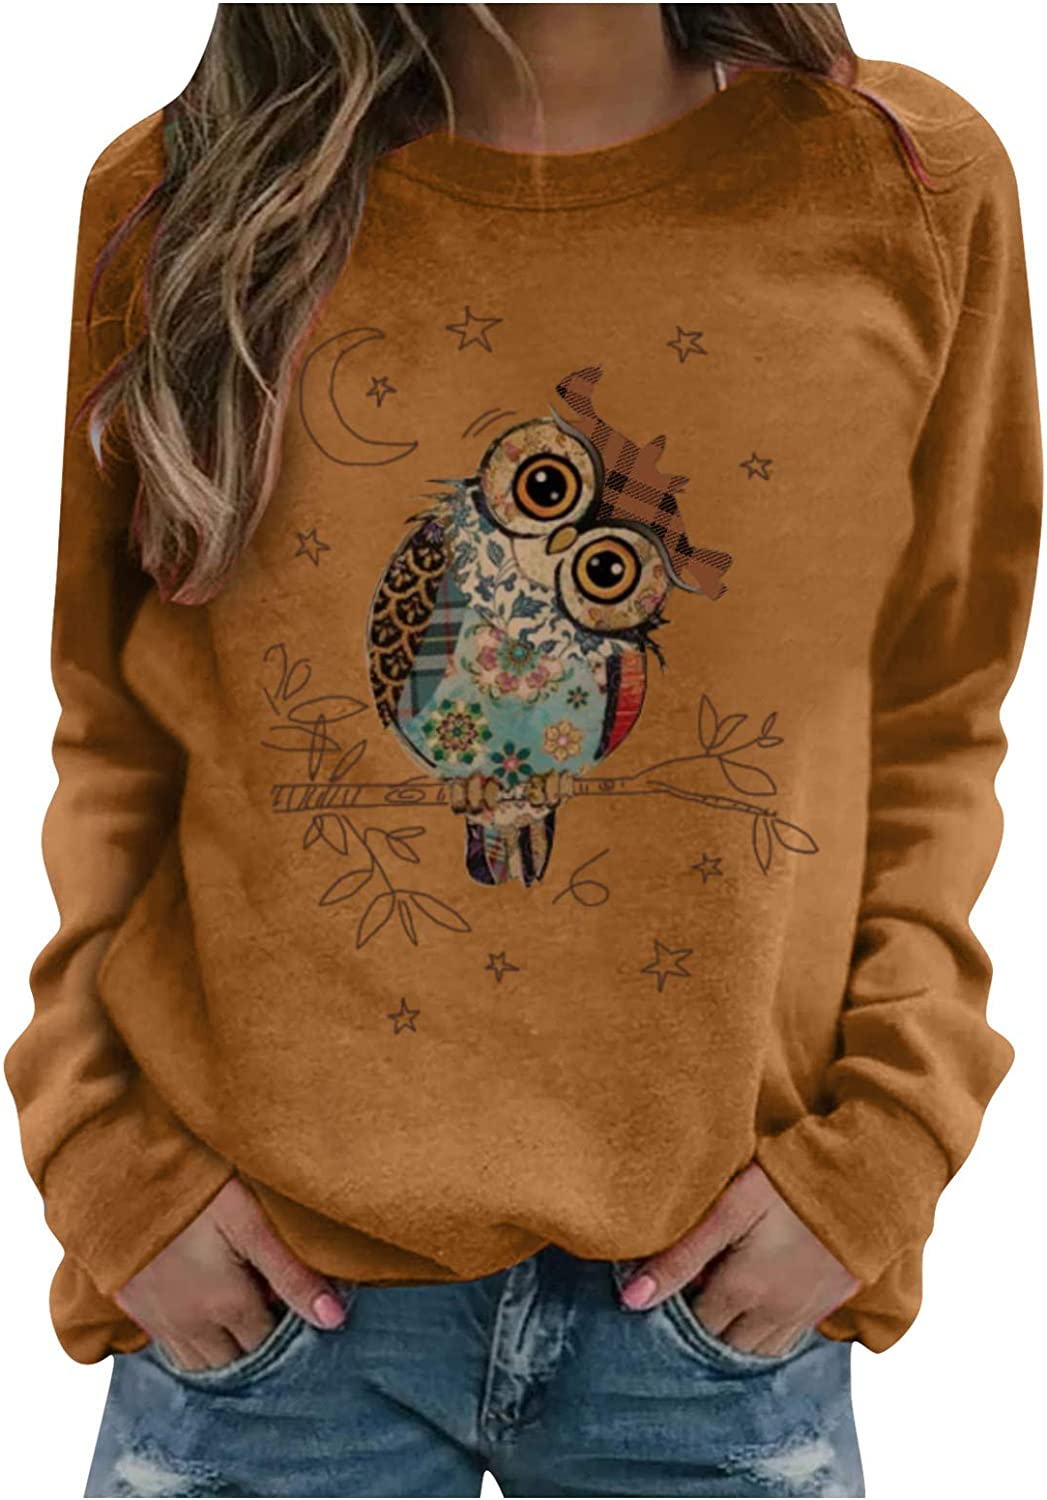 Hotkey Womens Sweatshirt Dragonfly Printed Pullover Crewneck Long Sleeve Tops Casual Loose Blouse Shirts for Women Teen Girls